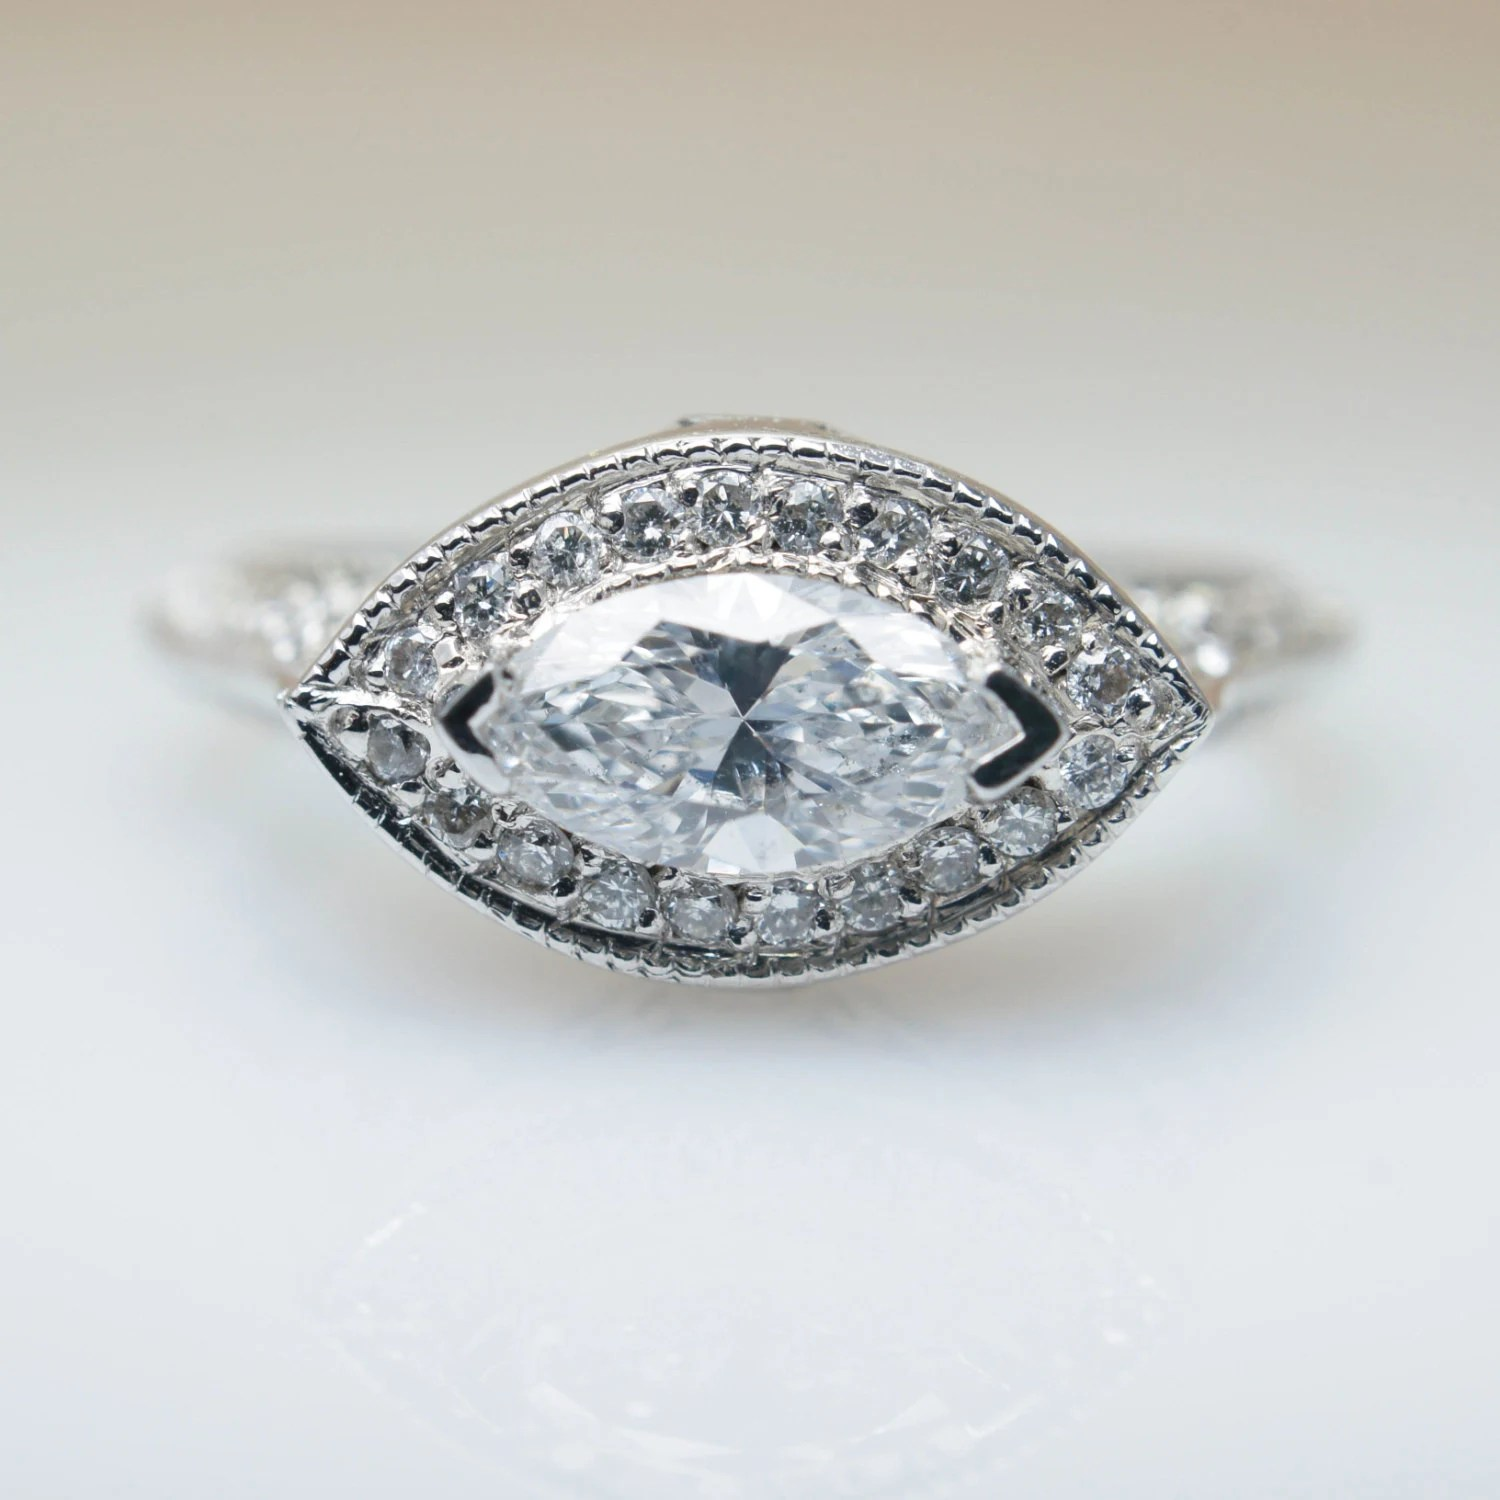 marquise diamond marquee wedding ring 1 09ctw East West Marquise Diamond Engagement Ring in 18k White Gold East West Engagement Ring Side Diamond Jewelry